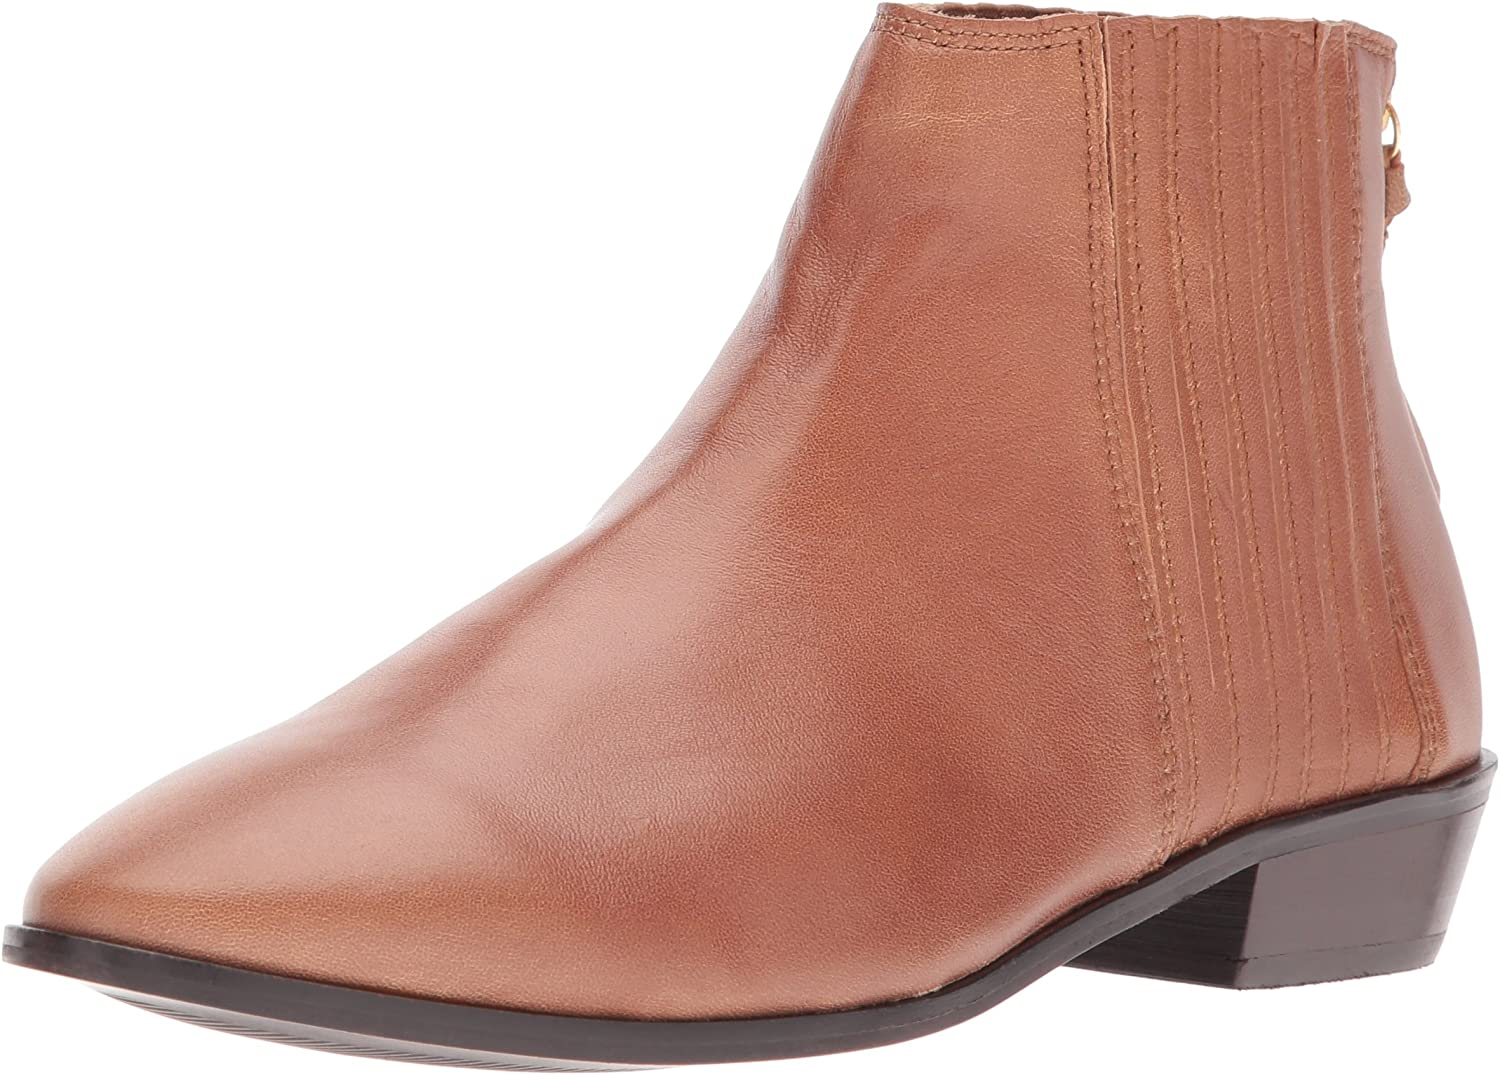 Kenneth Cole REACTION Womens Loop-y Flat Ankle Bootie Finger Gusset Leather Ankle Bootie